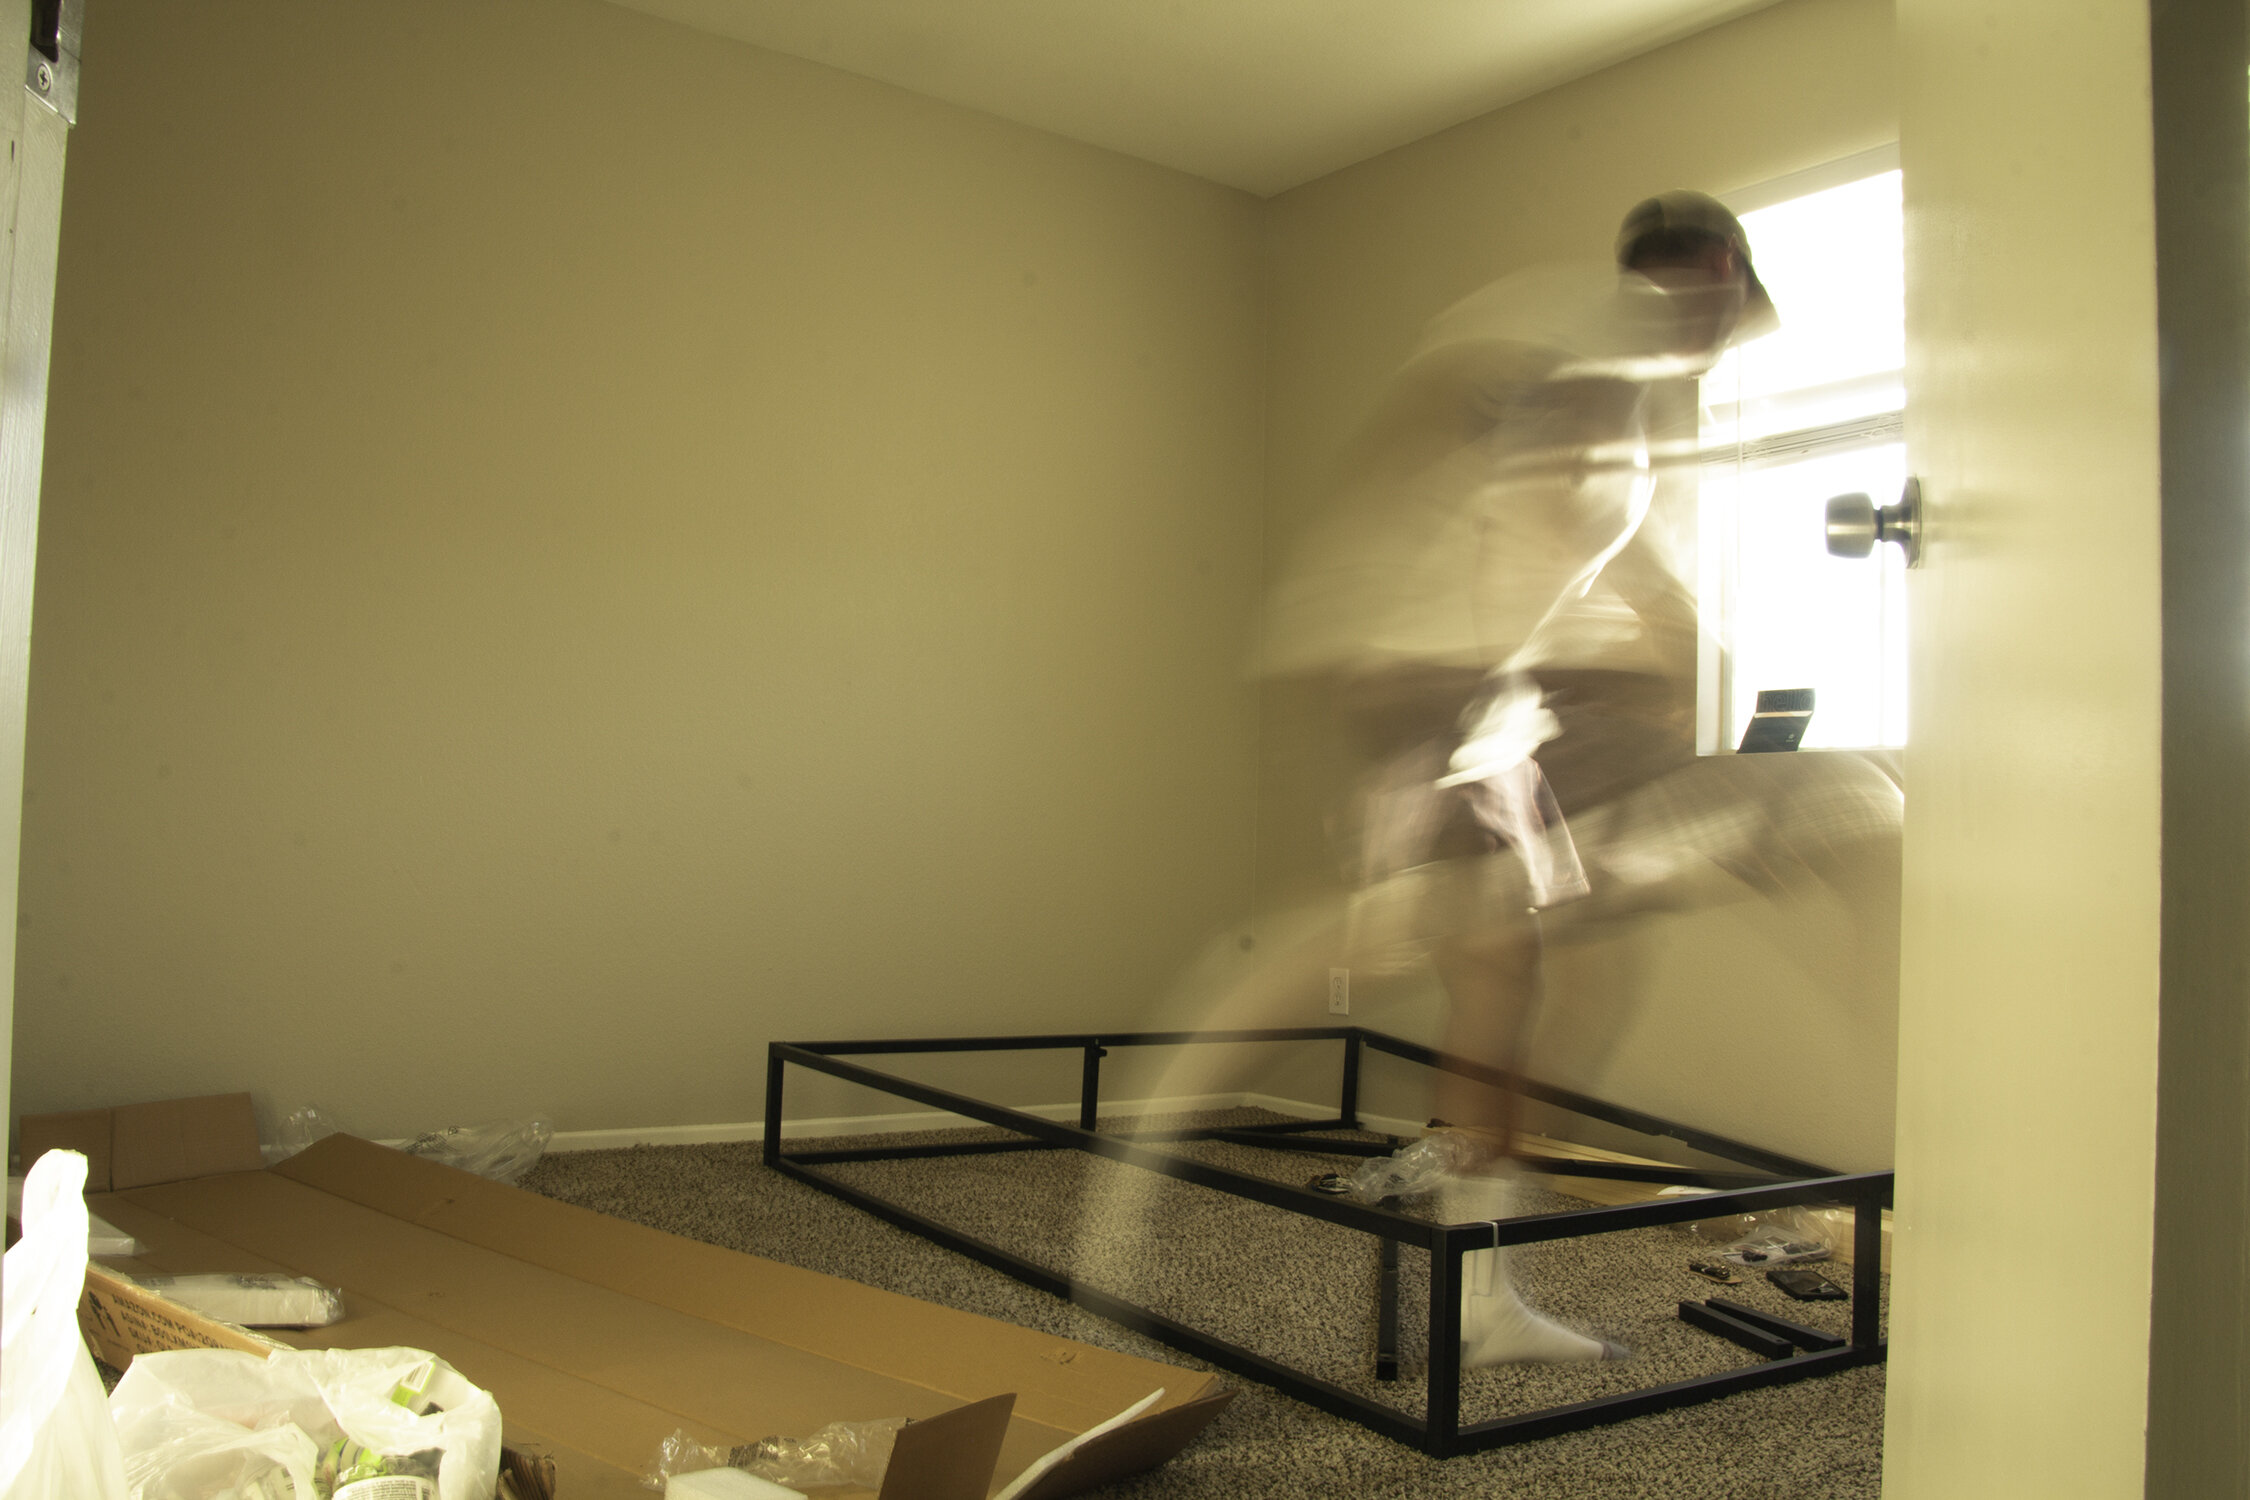 No mattress.... but still jumping on the bed.